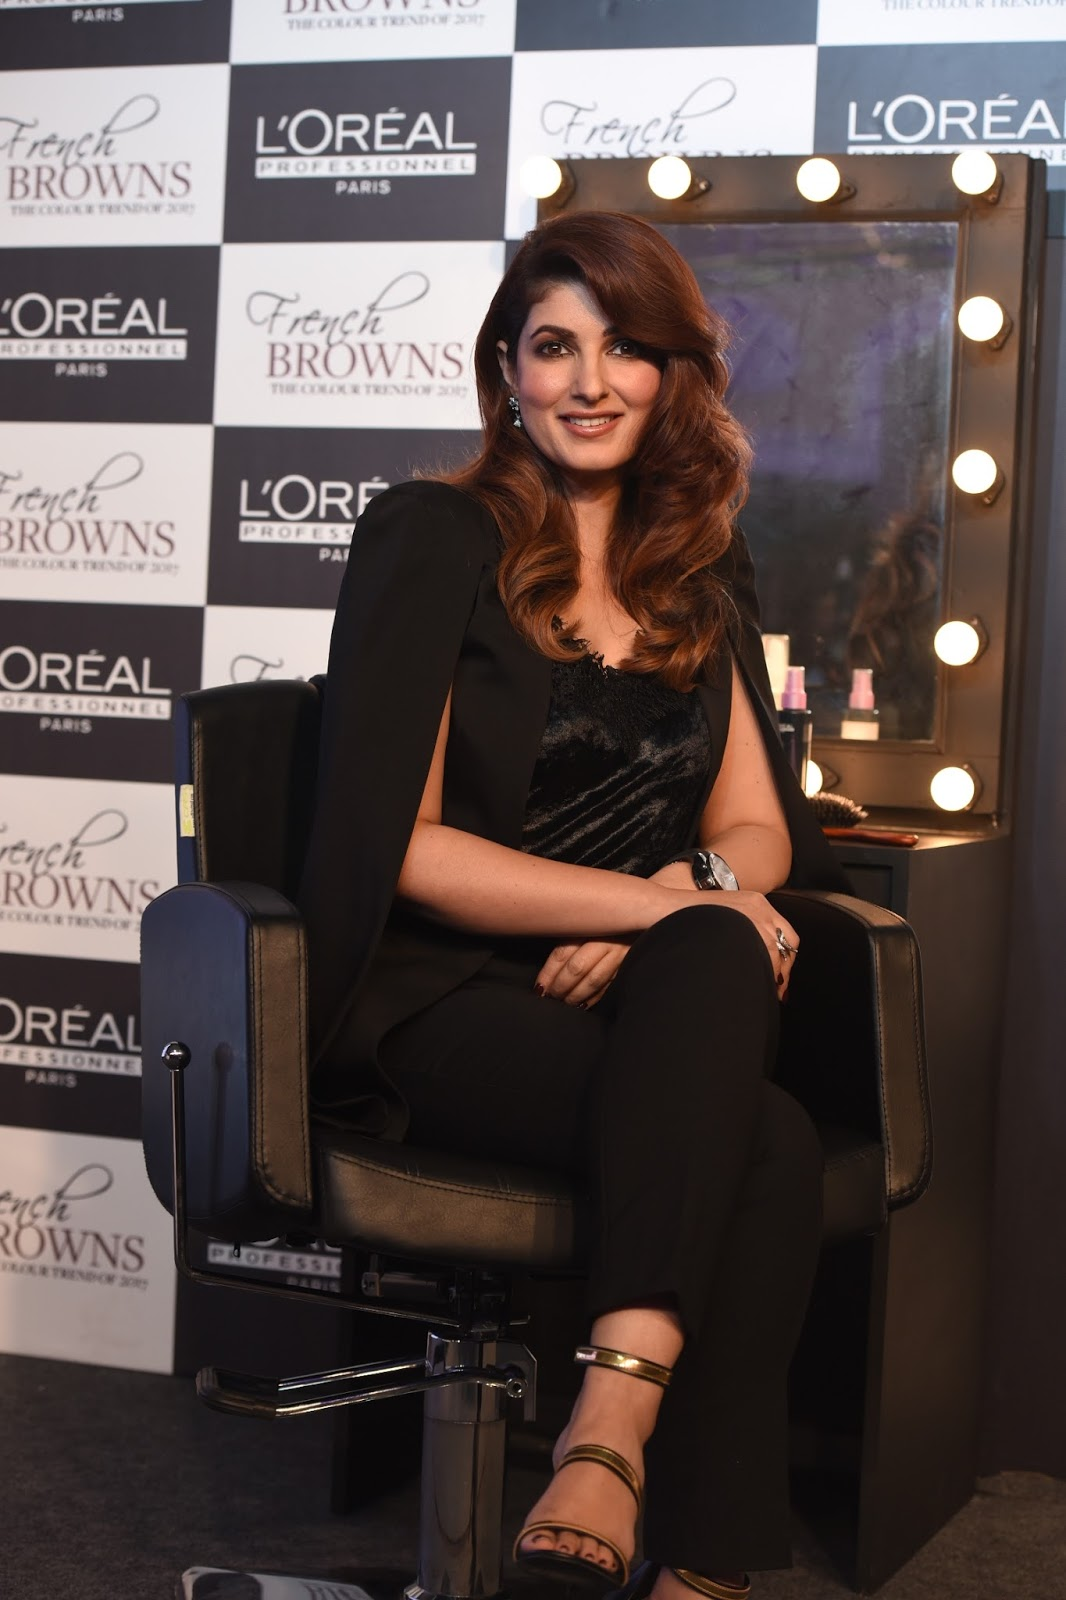 l oreal professionnel unveils the 2017 hair colour trend french browns with twinkle khanna